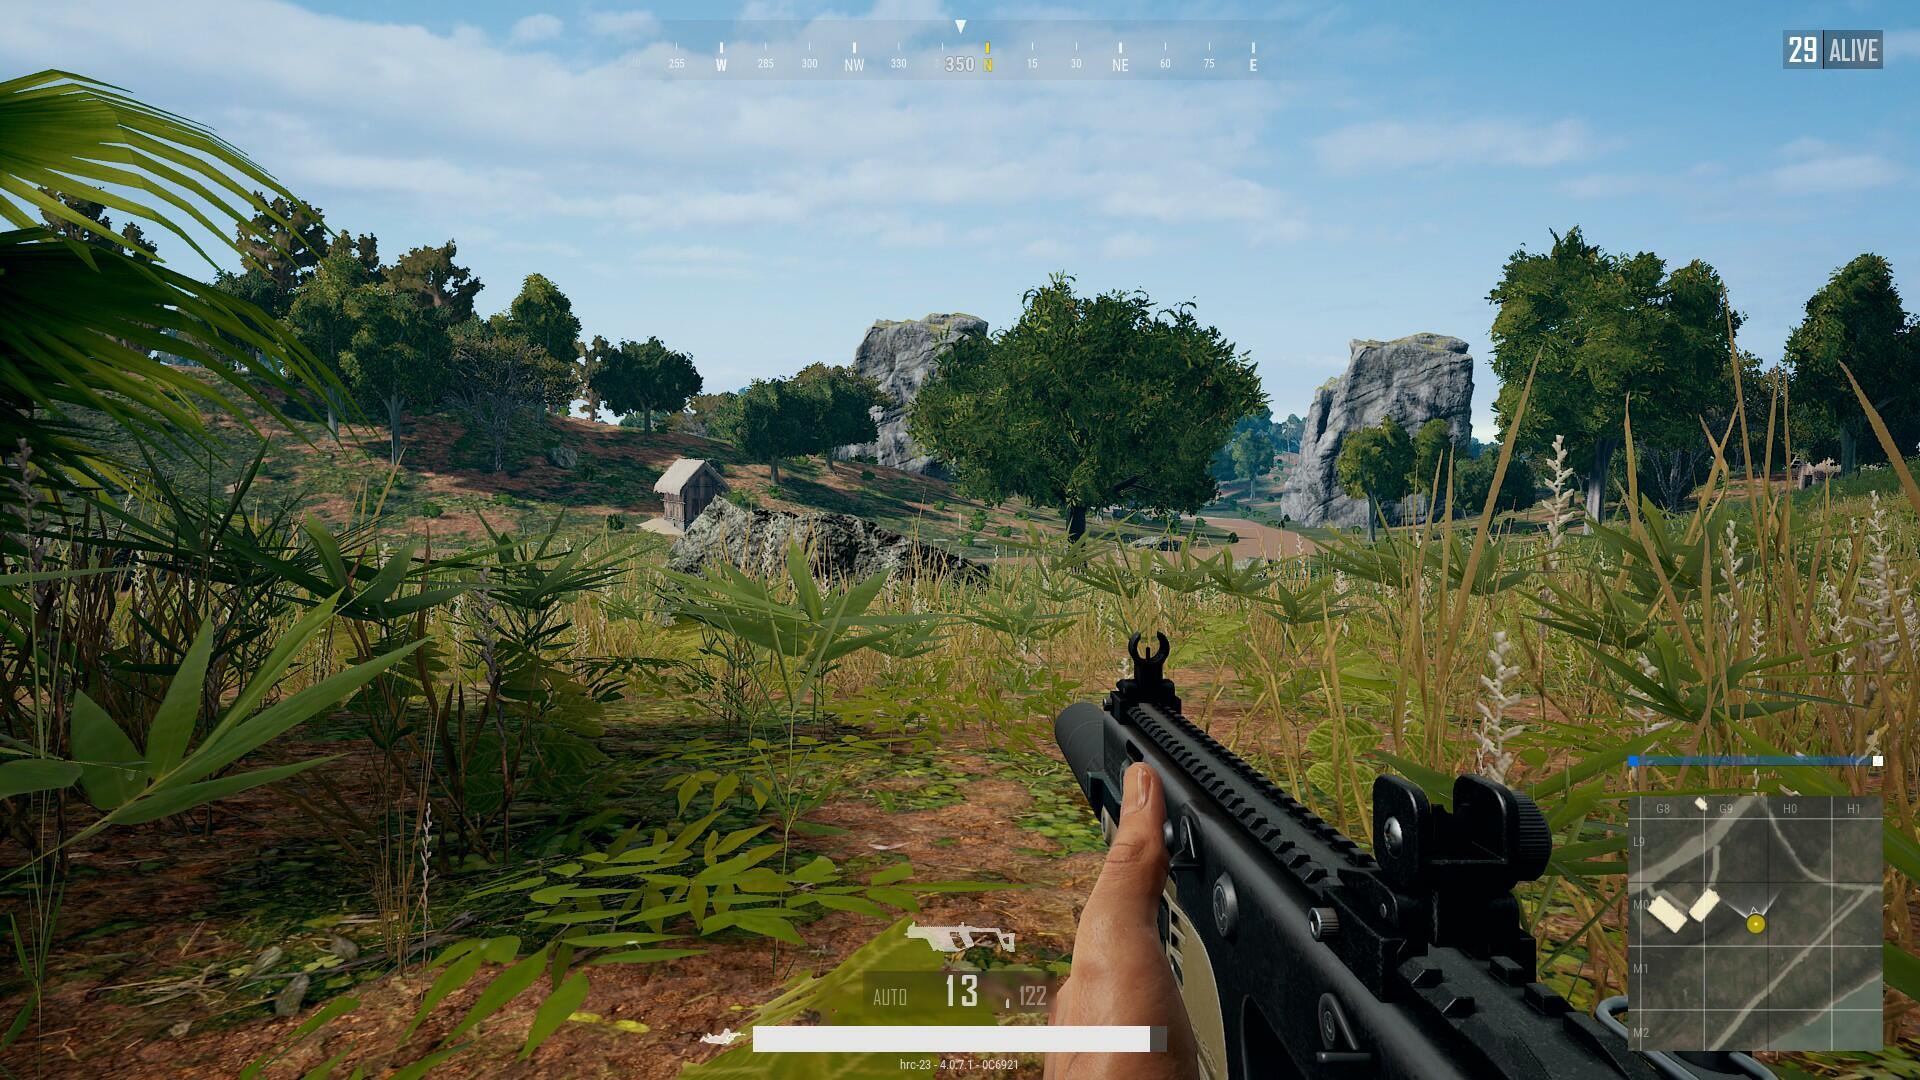 PUBG Sanhok Map Guide Tips and Tricks -How to Master the PUBG Sanhok Map on Xbox One and PC